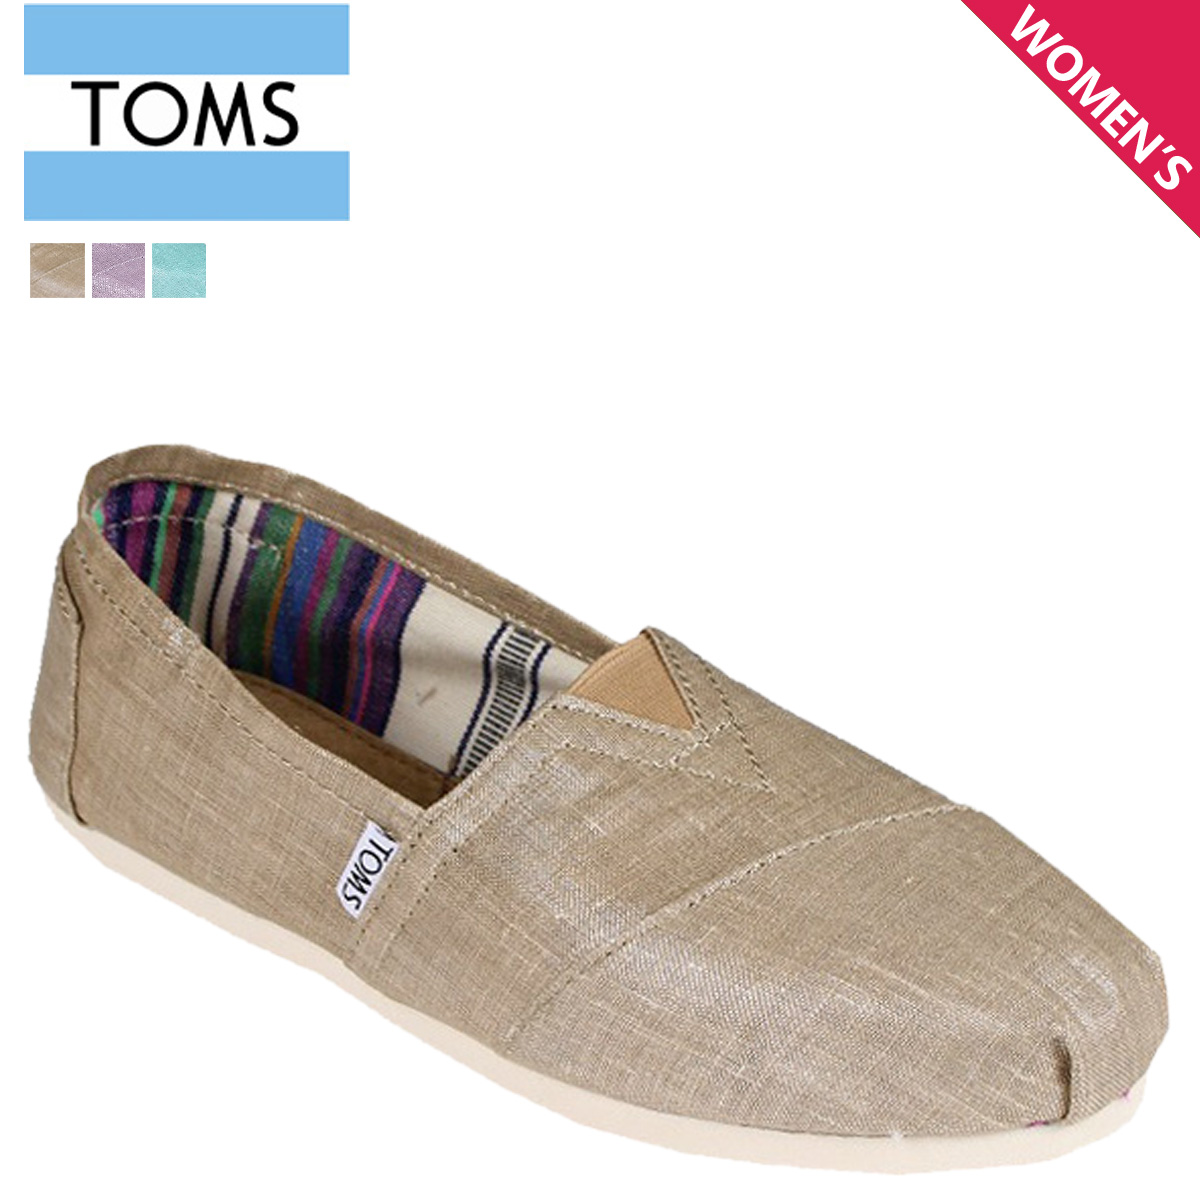 Toms Shoes Women S Slip On 001108b Classics Cotton Las 2018 New